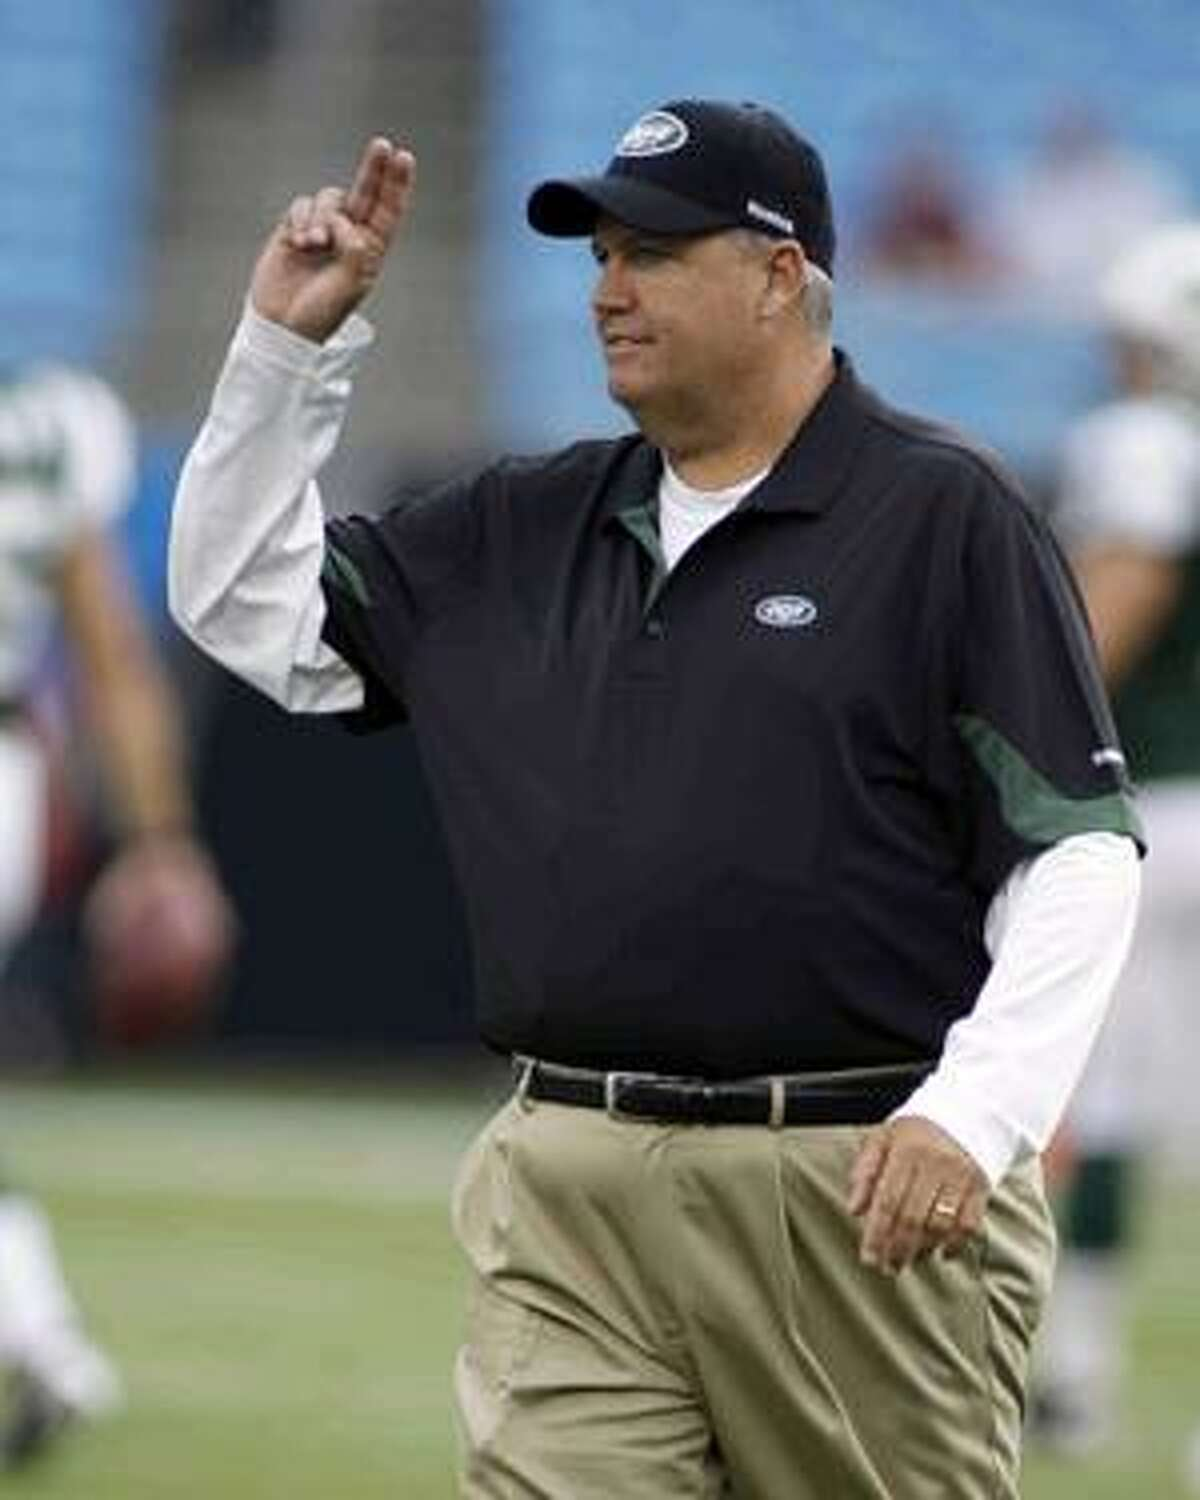 New York Jets head coach Rex Ryan waves at fans before a preseason NFL football game against the Carolina Panthers in Charlotte, N.C., Saturday, Aug. 21, 2010. (AP Photo/Rick Havner)